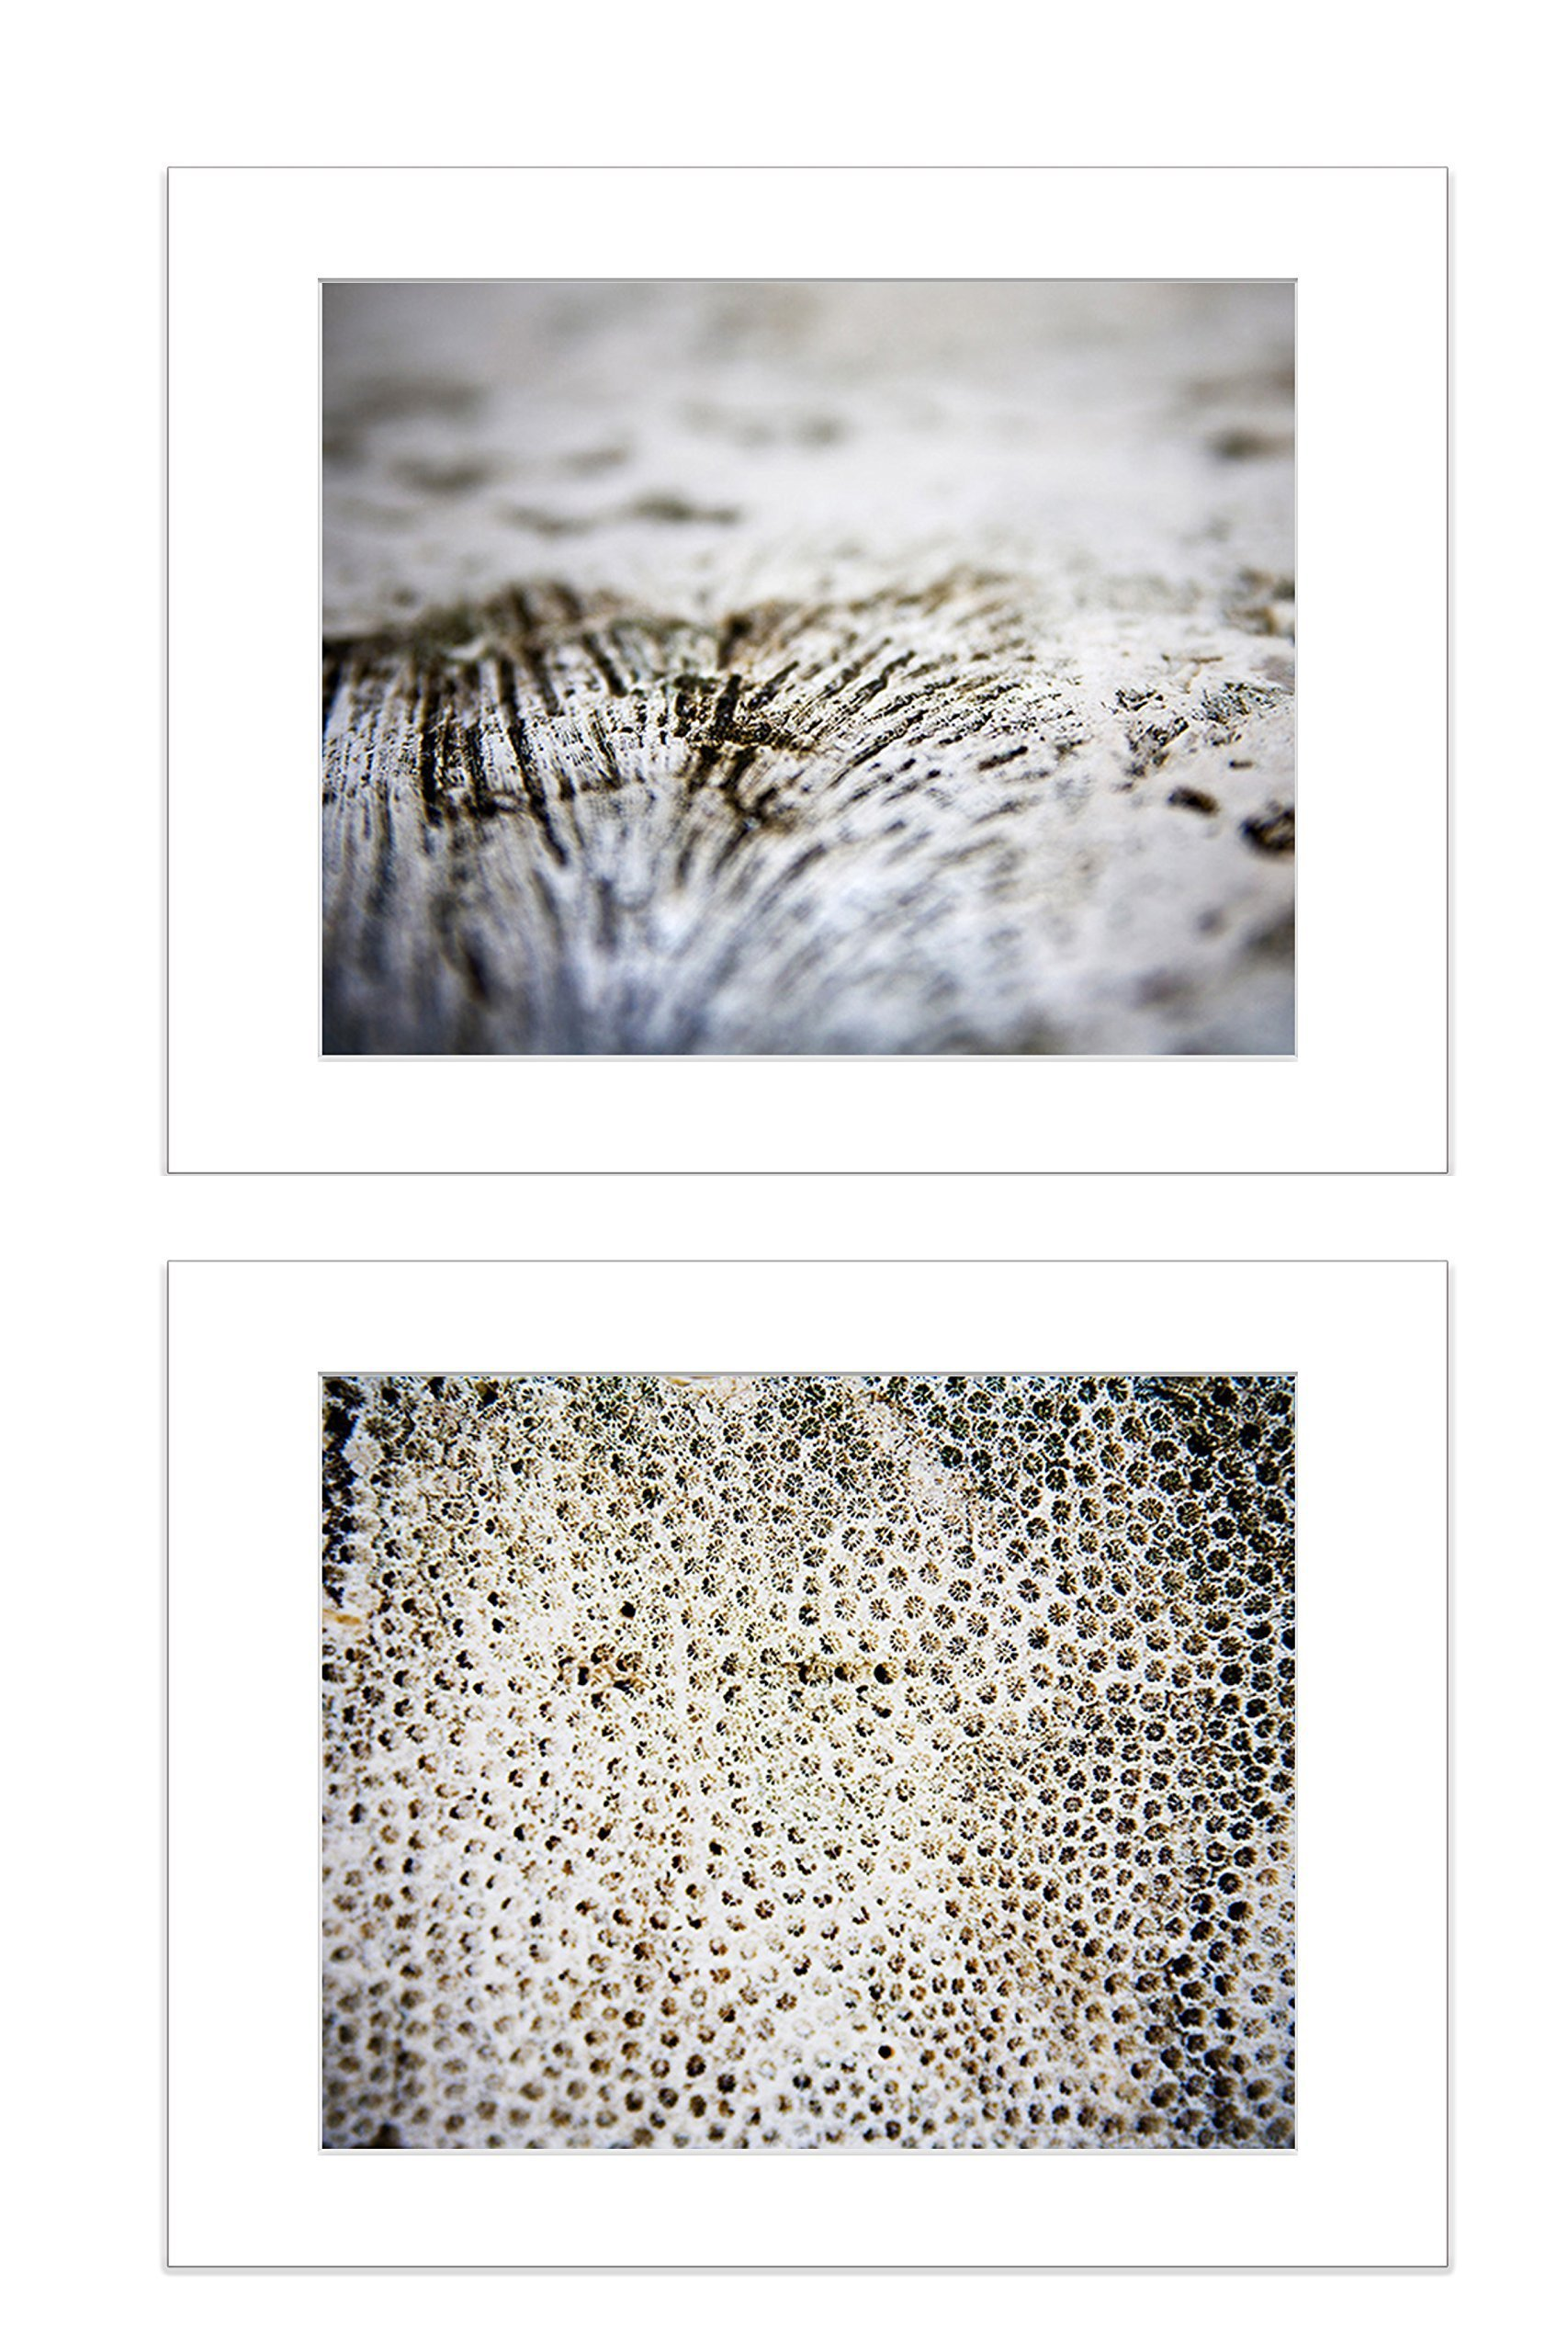 Set of 2 5x7 Inch Matted Photos Abstract Coral Reef Marine Life Underwater Beach